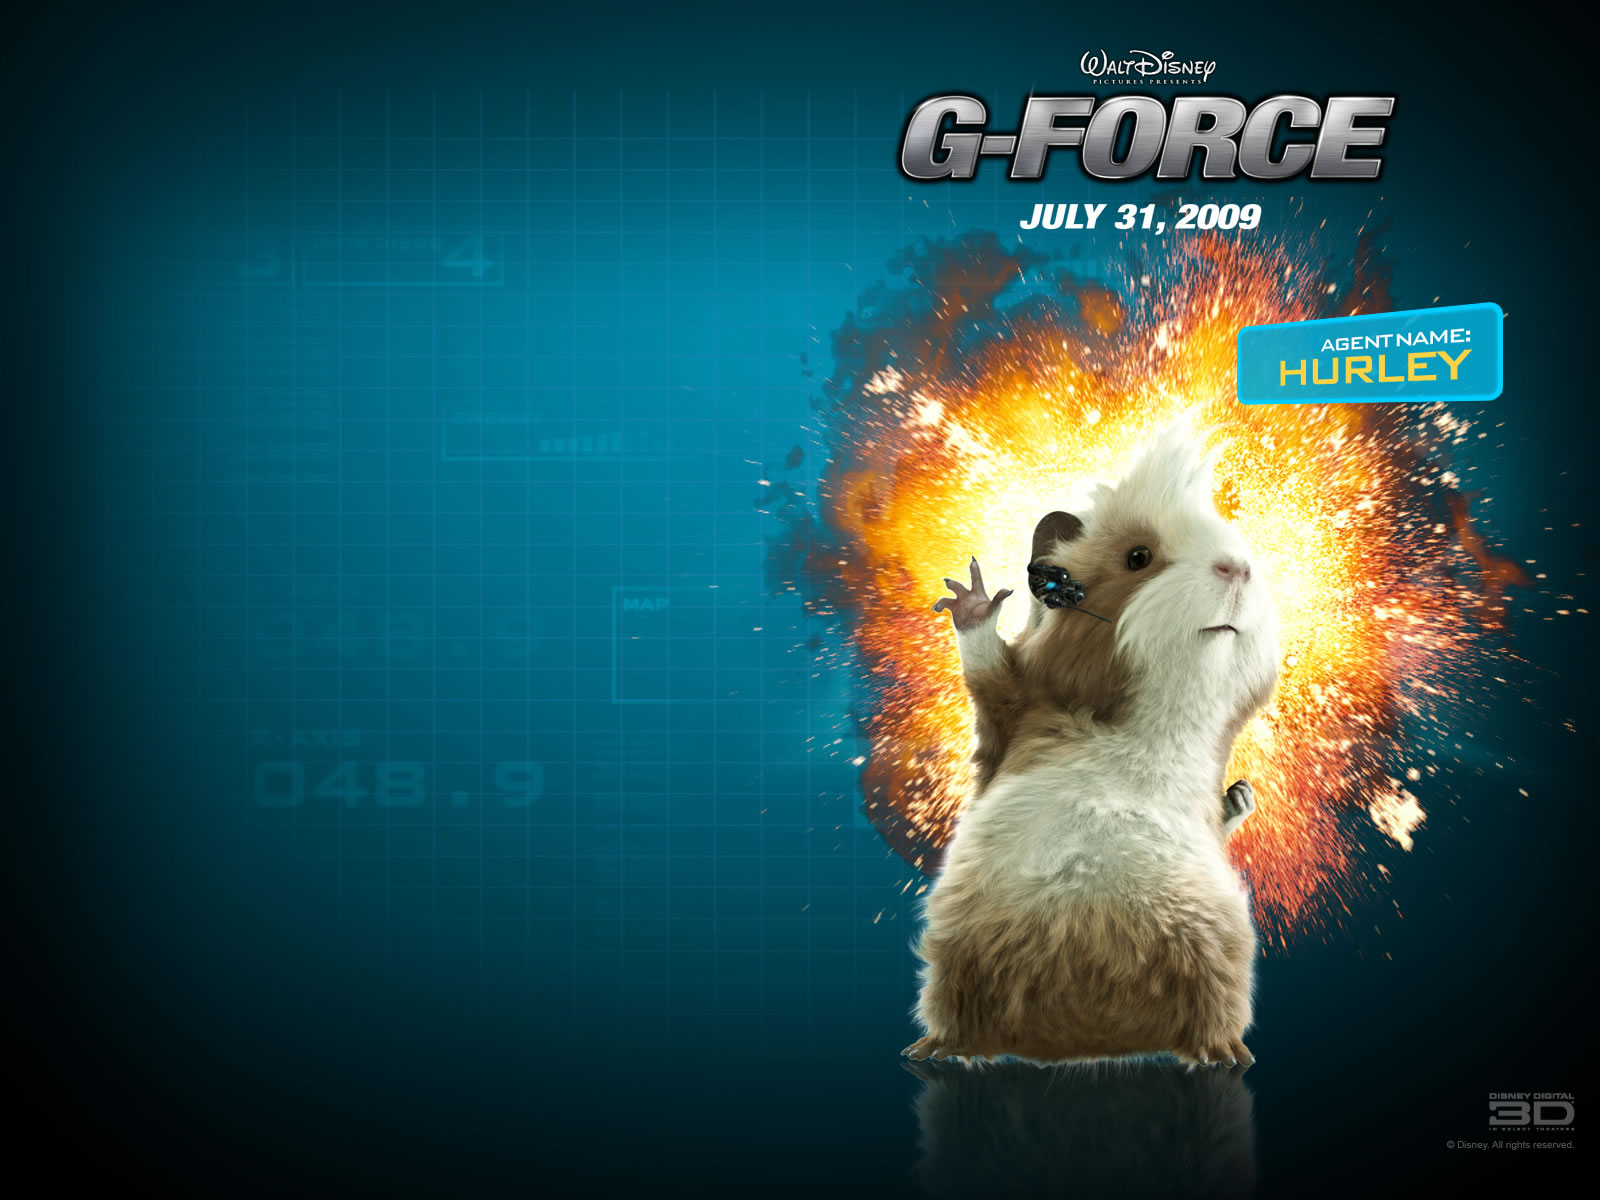 G-Force wallpaper : Hurley